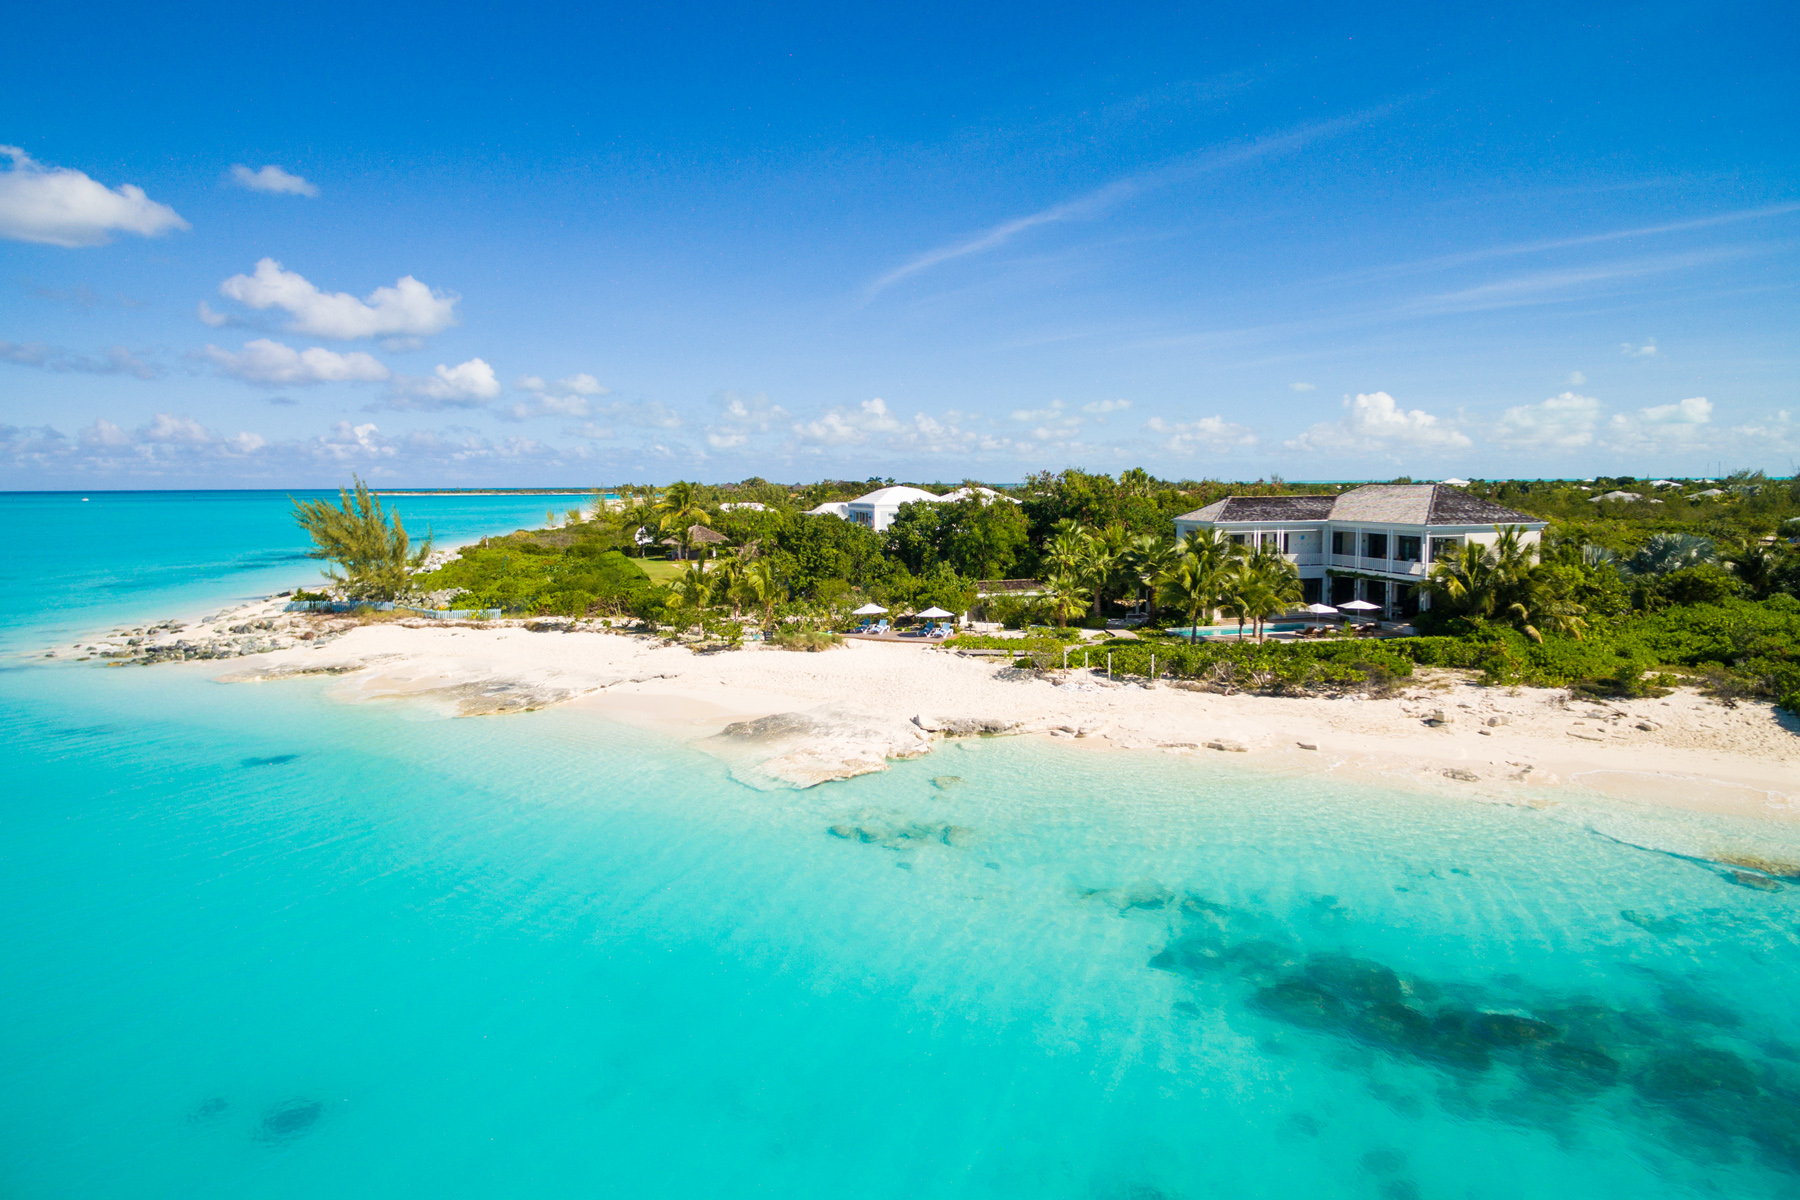 Tek Ailelik Ev için Satış at Saving Grace - Luxurious Beachfront Villa Grace Bay, Providenciales, TCI BWI Turks Ve Caicos Adalari